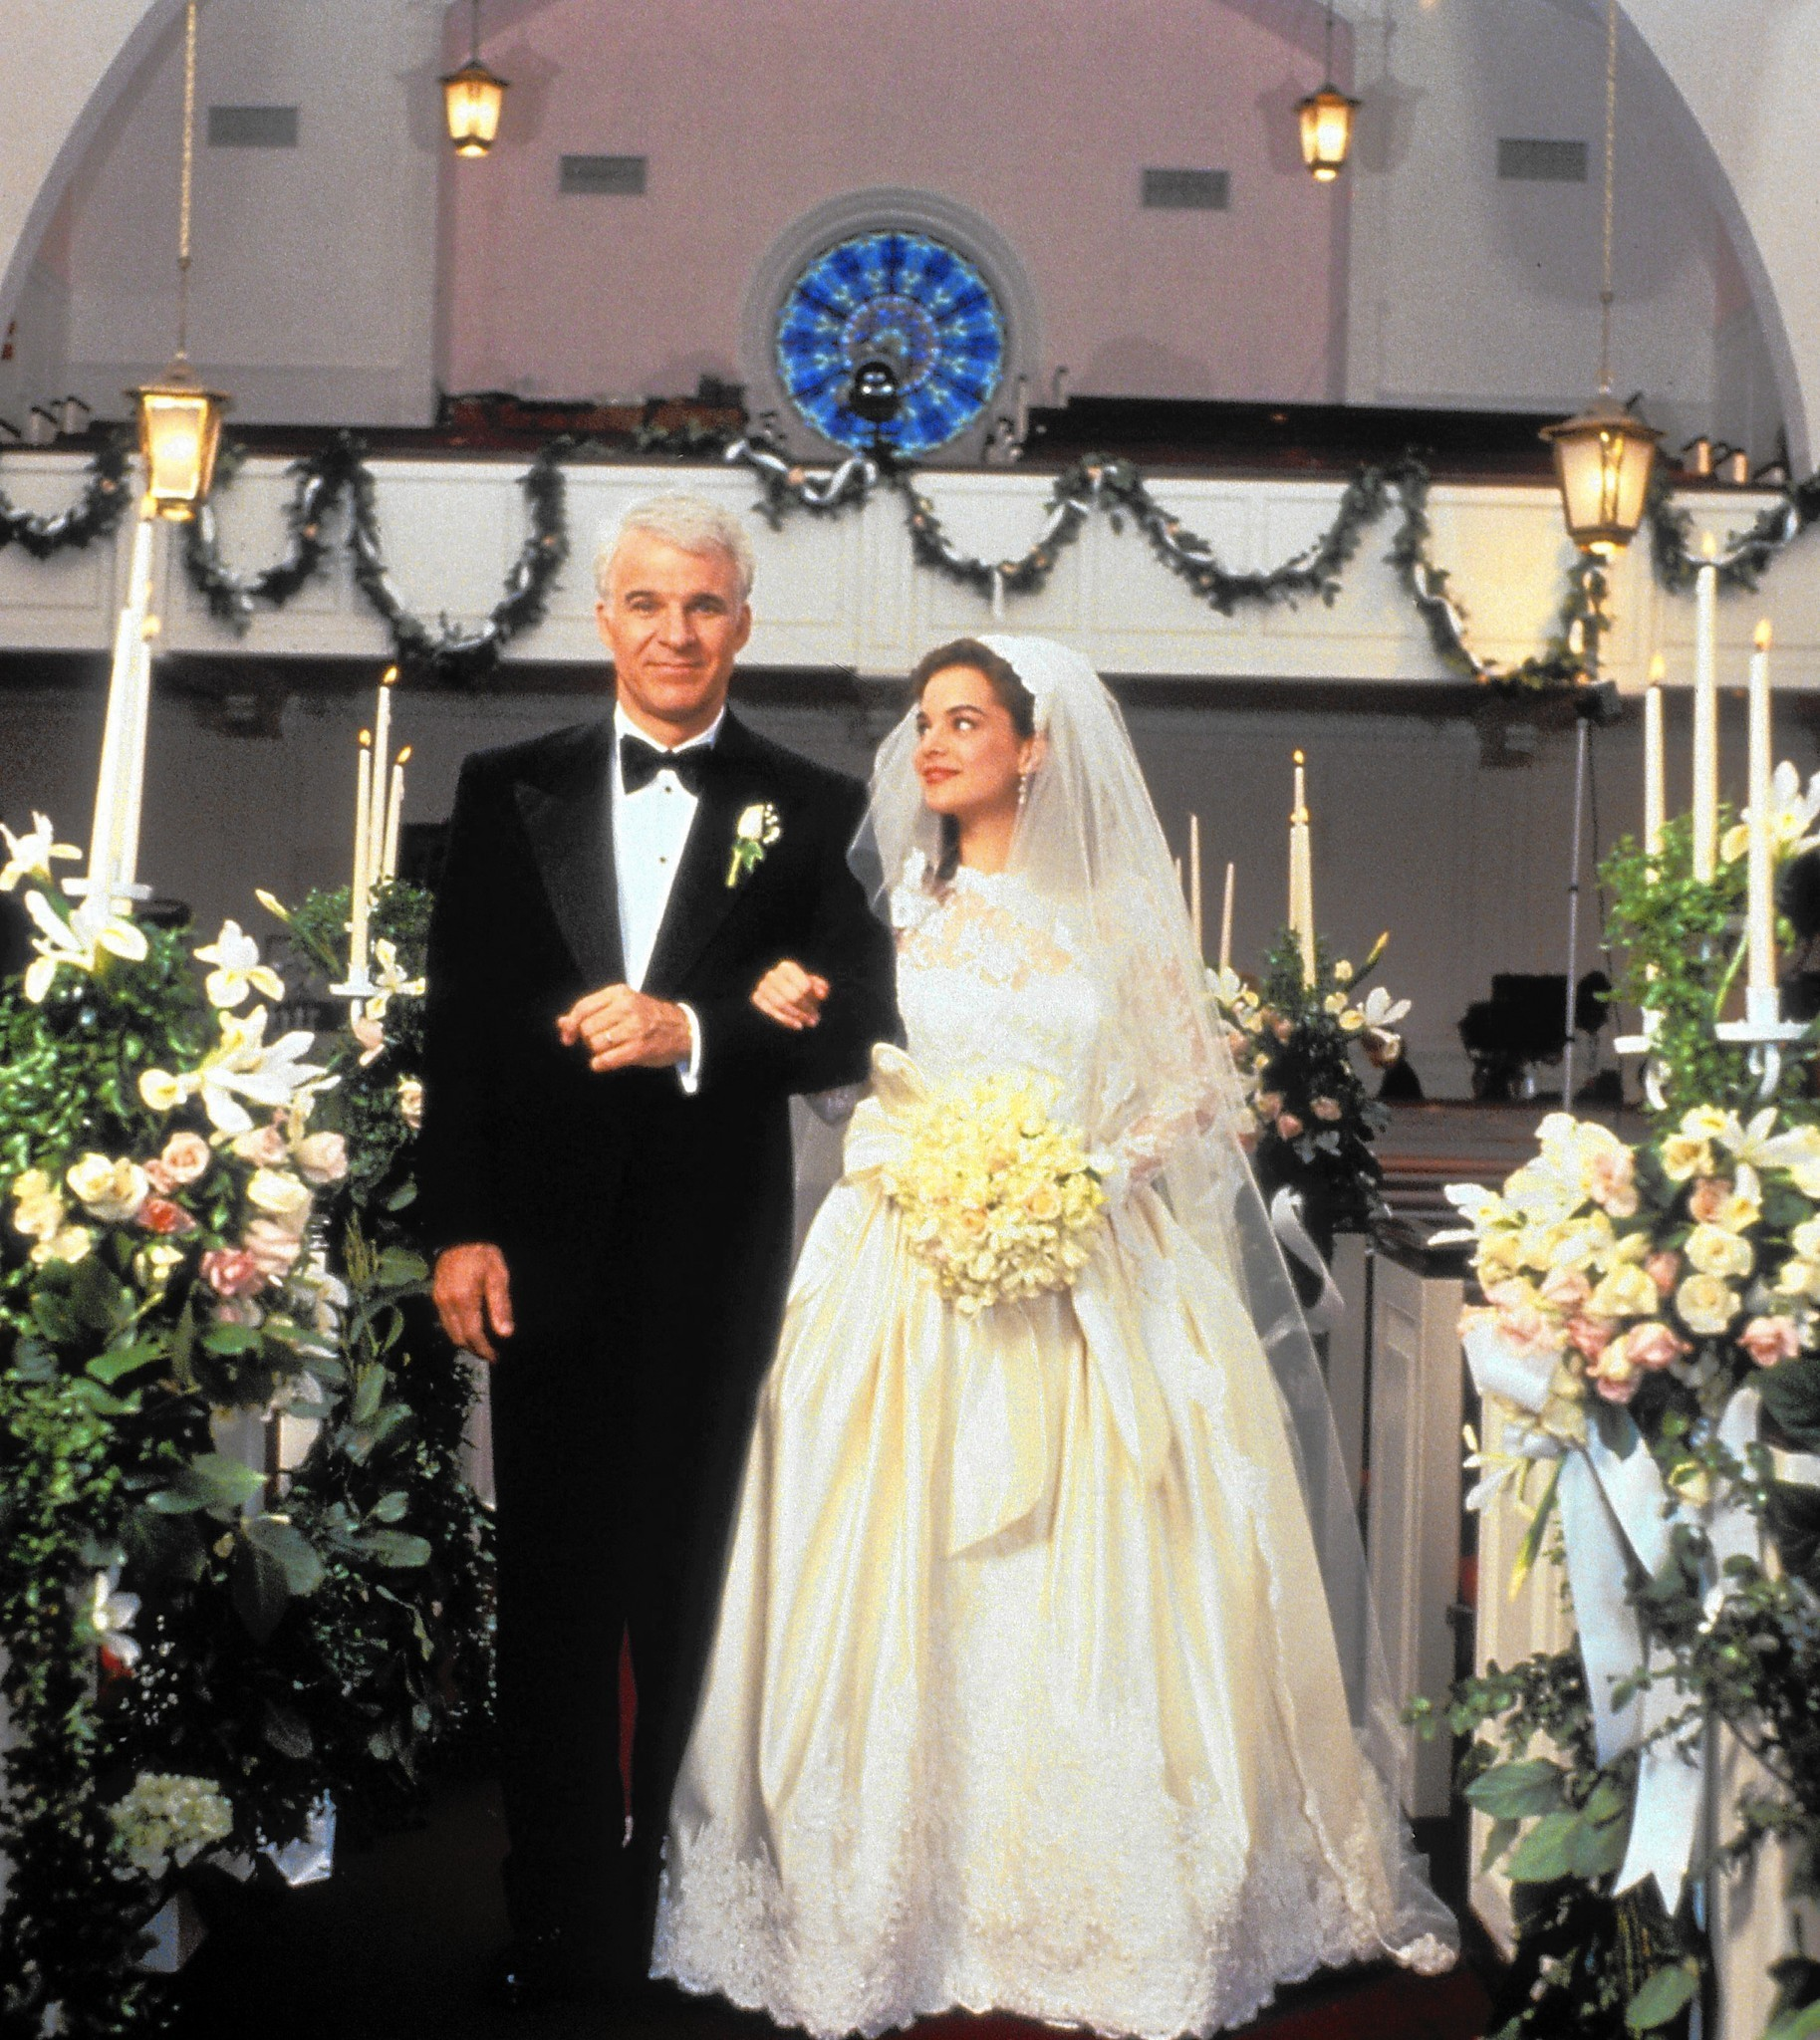 Paying For The Wedding Bride S Family May Be Getting Some Relief Chicago Tribune